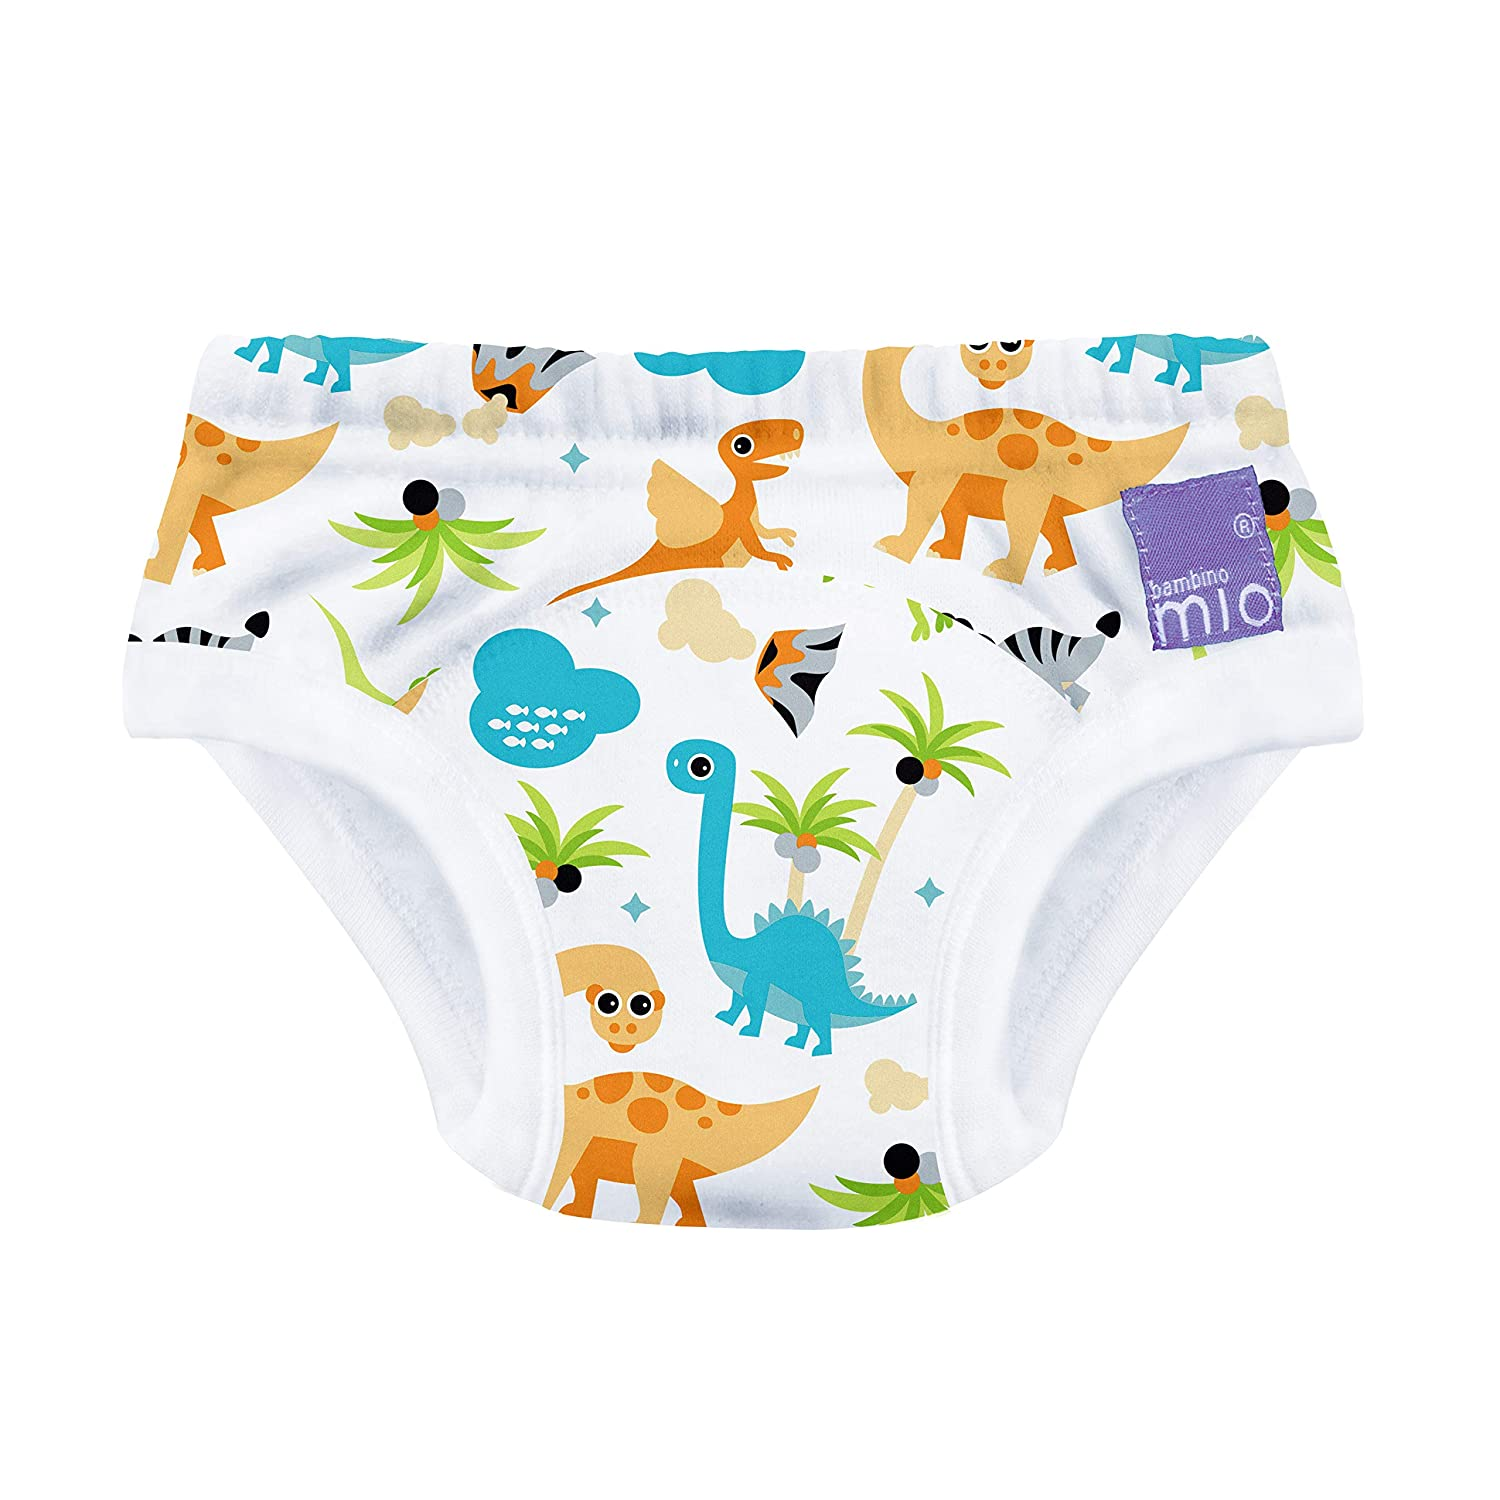 Skhls Unisex-Baby Reusable Cute Potty Training Pants Nappy Underwear 3 Pack